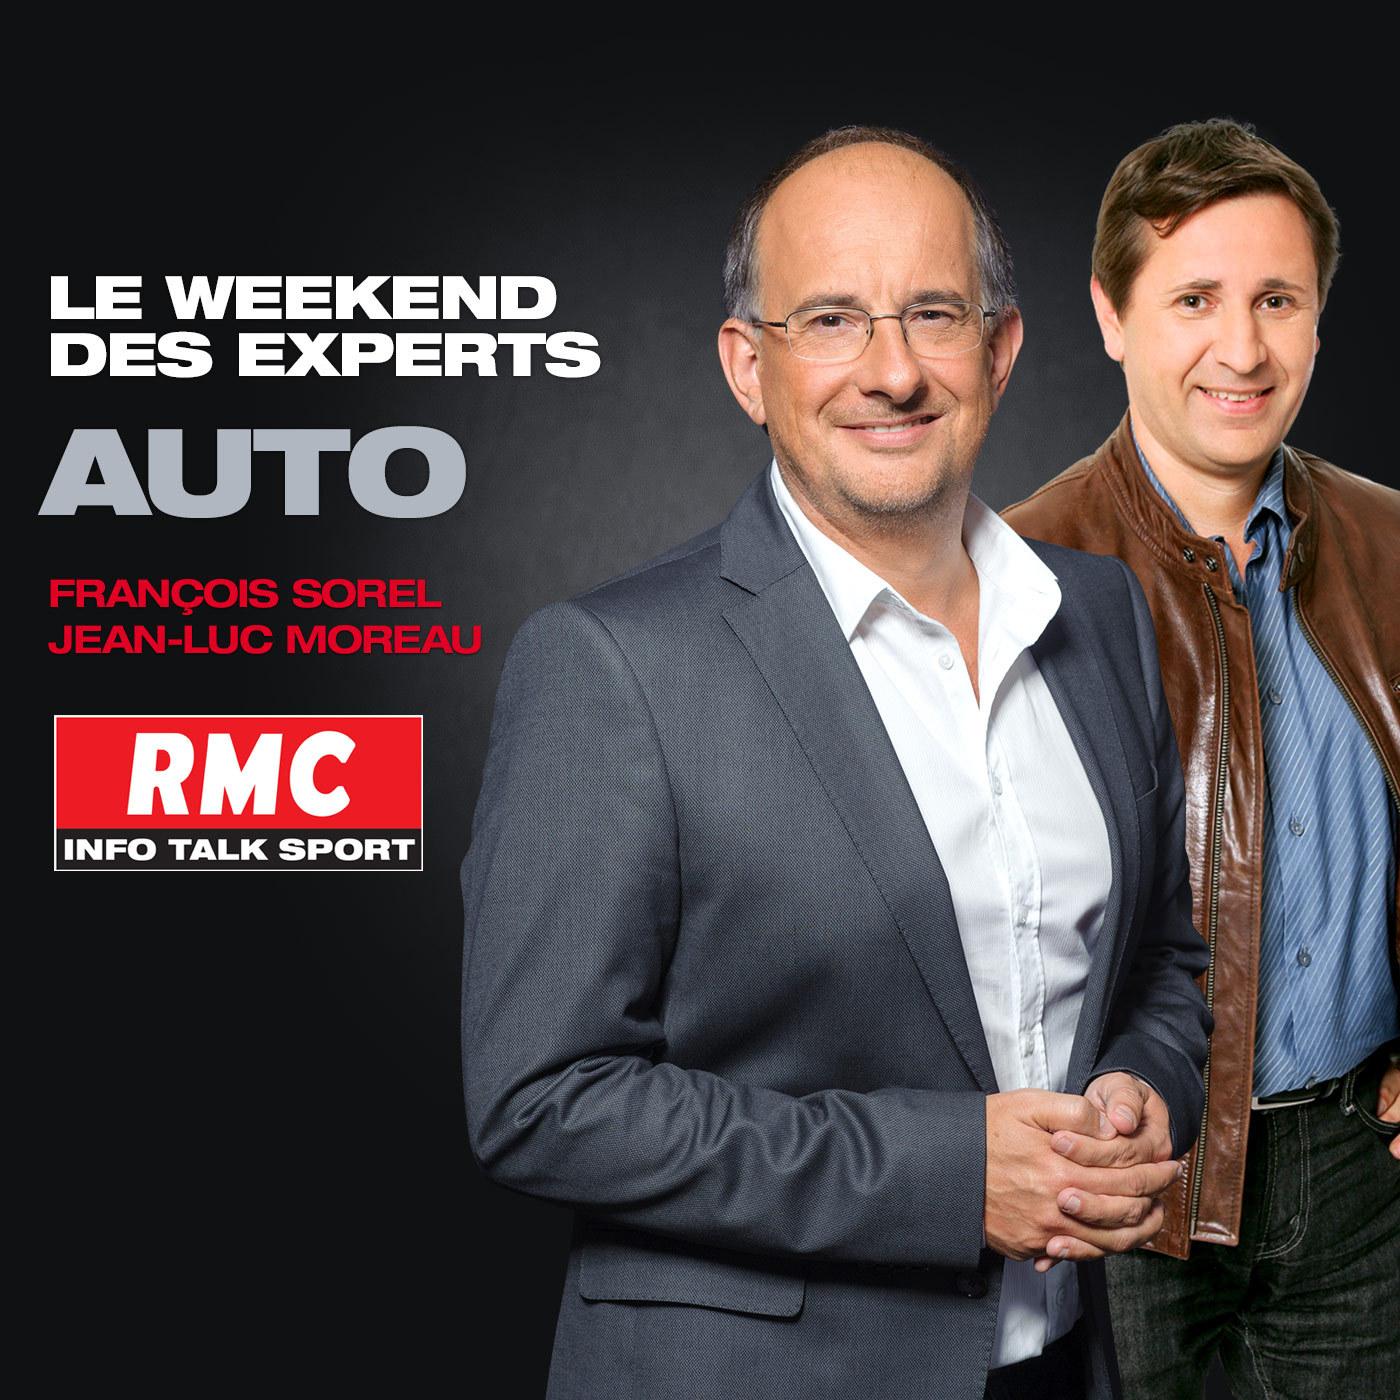 le weekend des experts votre auto